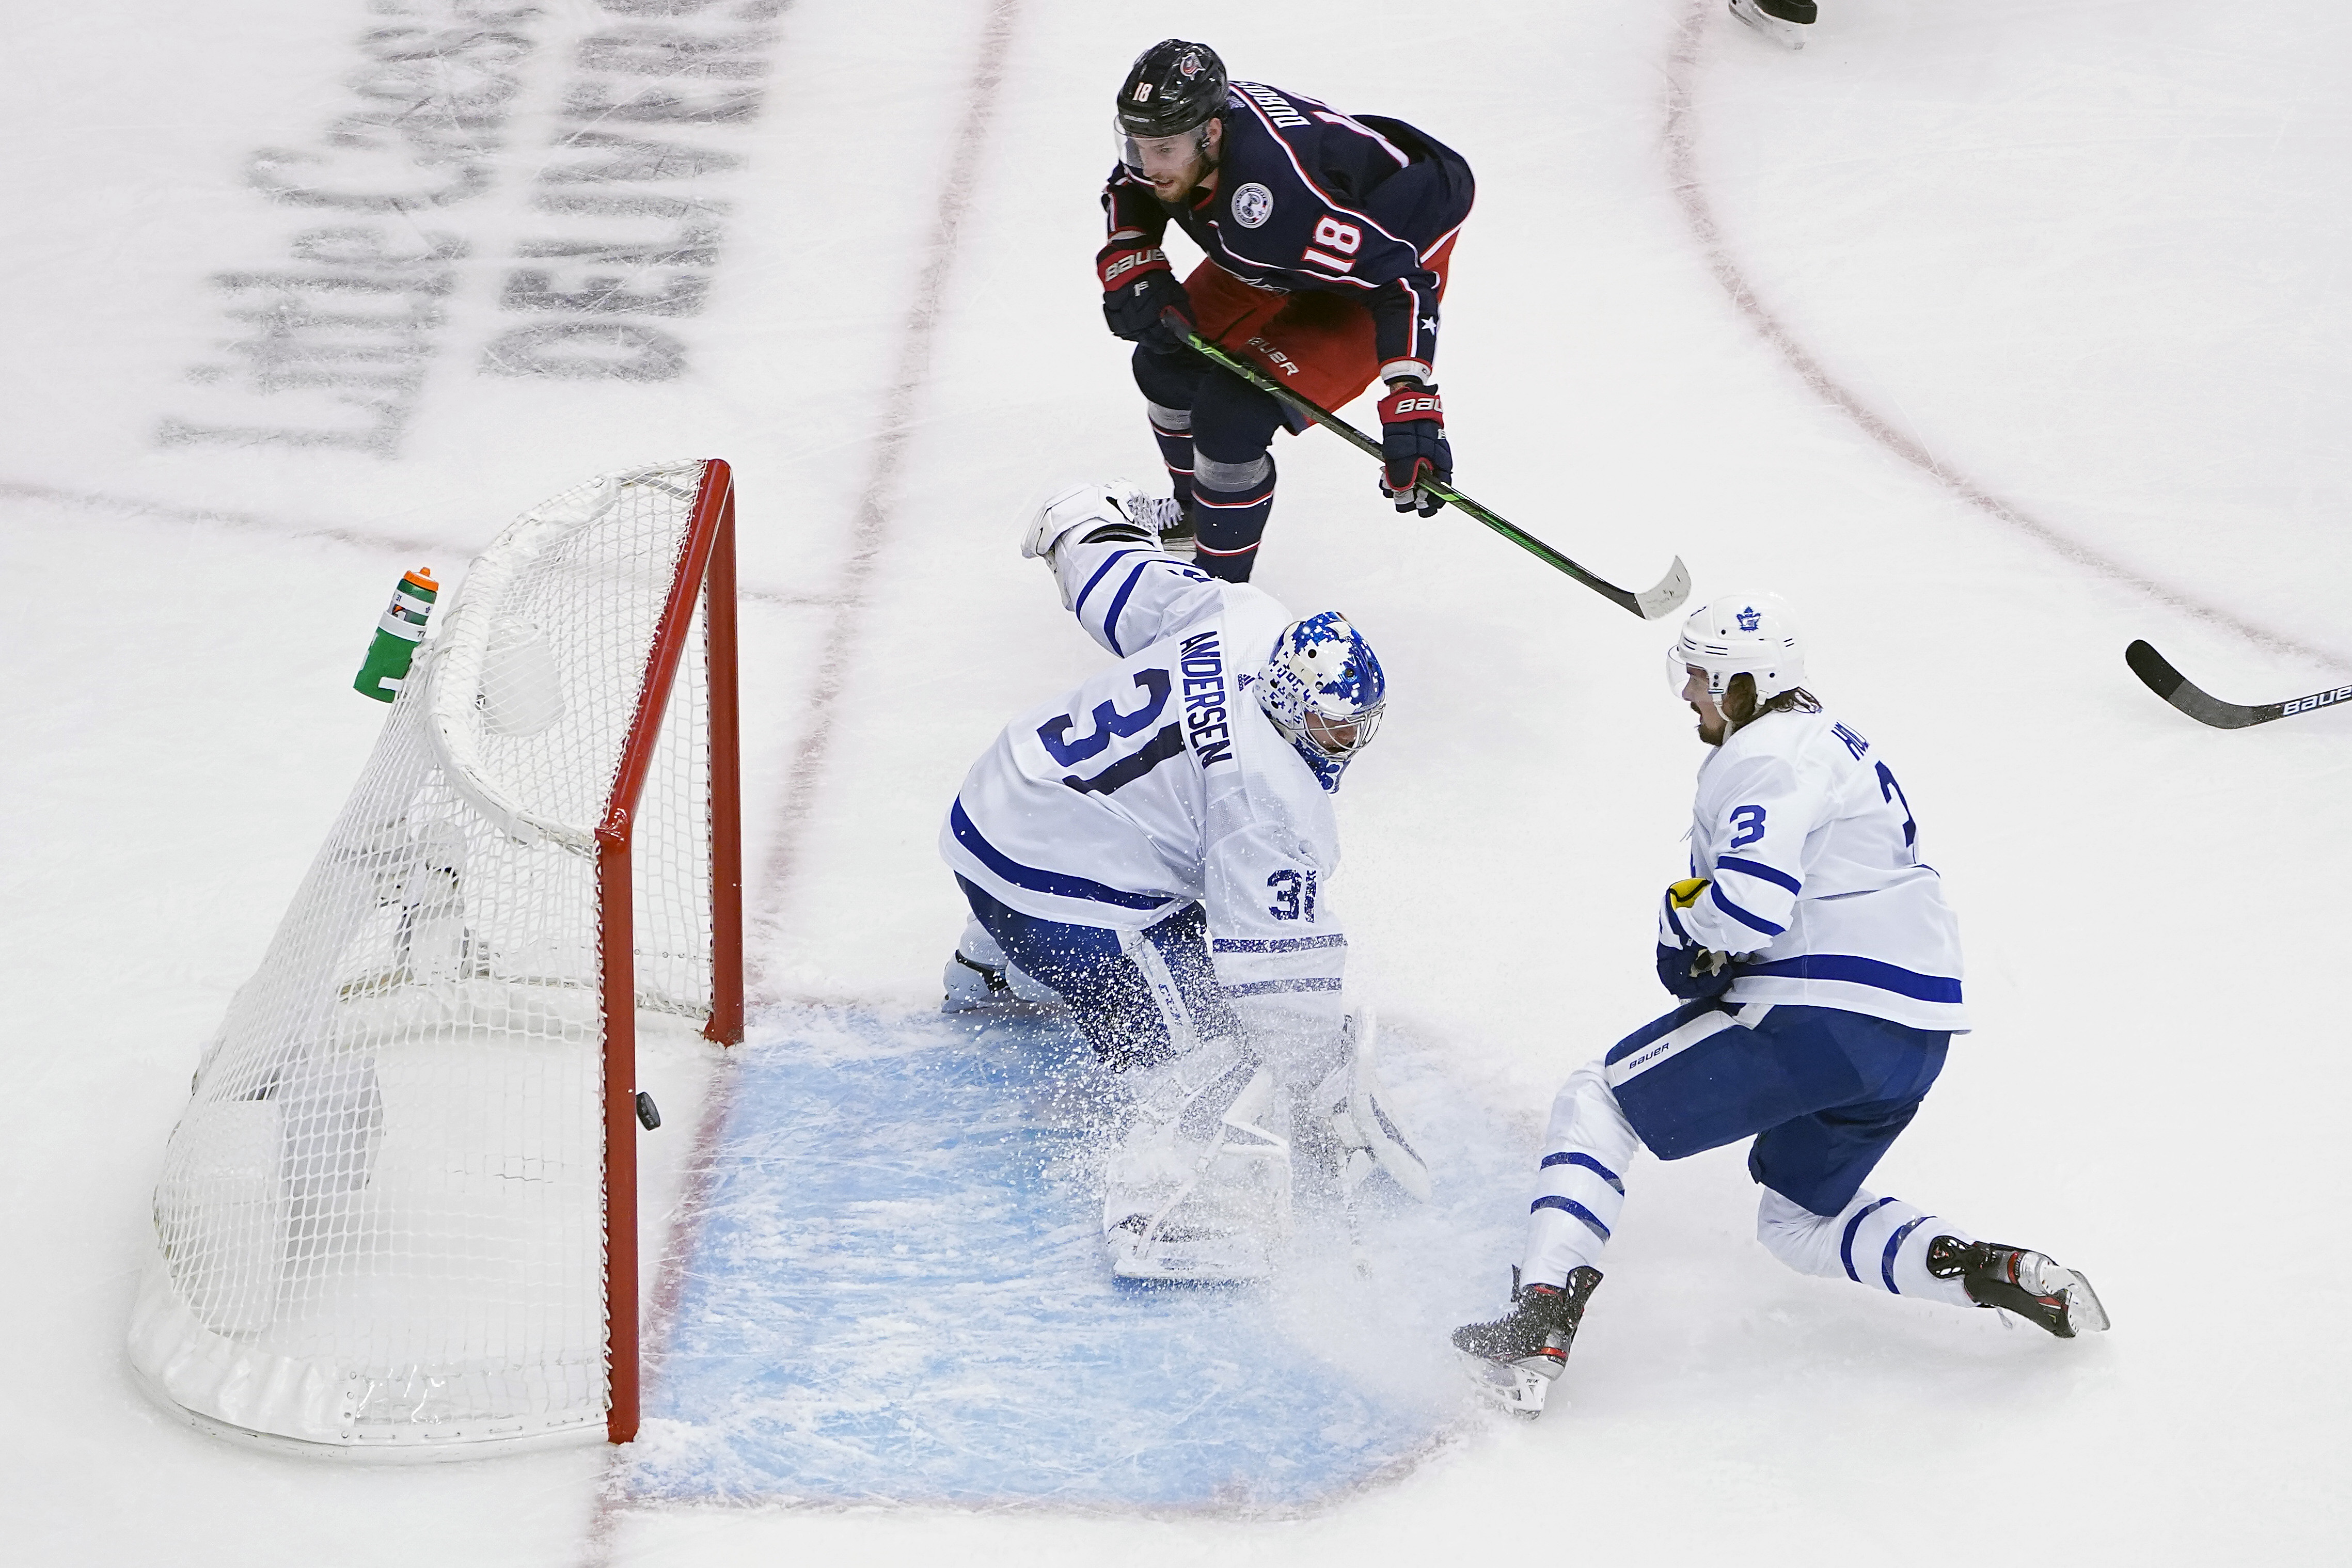 Toronto Maple Leafs Vs Columbus Blue Jackets Free Live Stream 8 7 20 How To Watch Nhl Qualifying Round Time Channel Pennlive Com